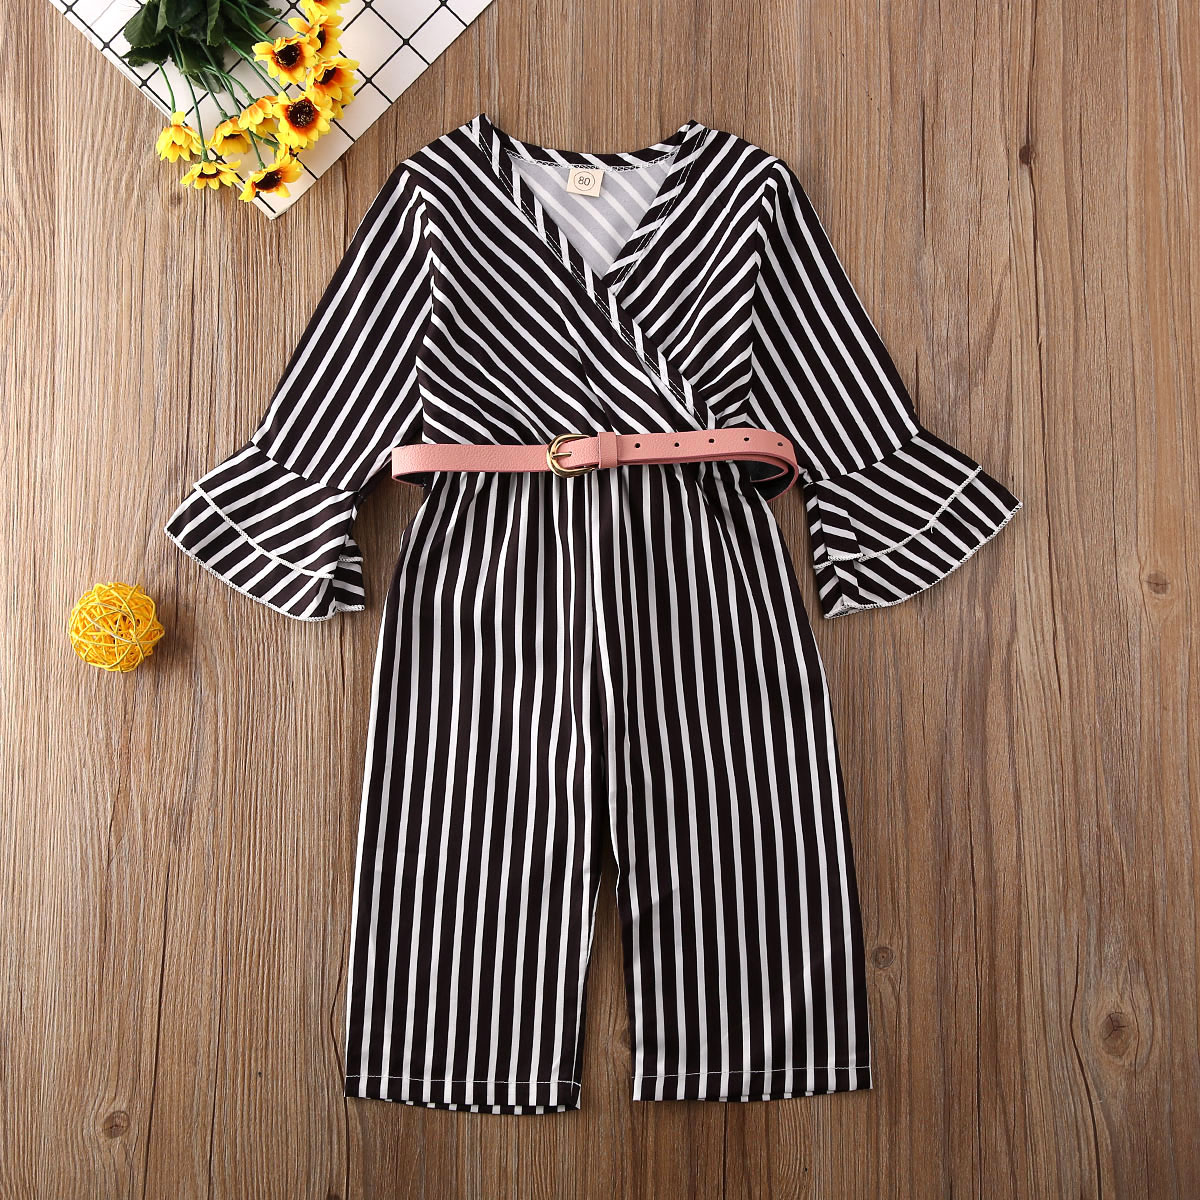 Pudcoco Newest Fashion Toddler Baby Girl Clothes Striped Flare Long Sleeve Romper Jumpsuit Belt One-Piece Outfit Cotton Clothes